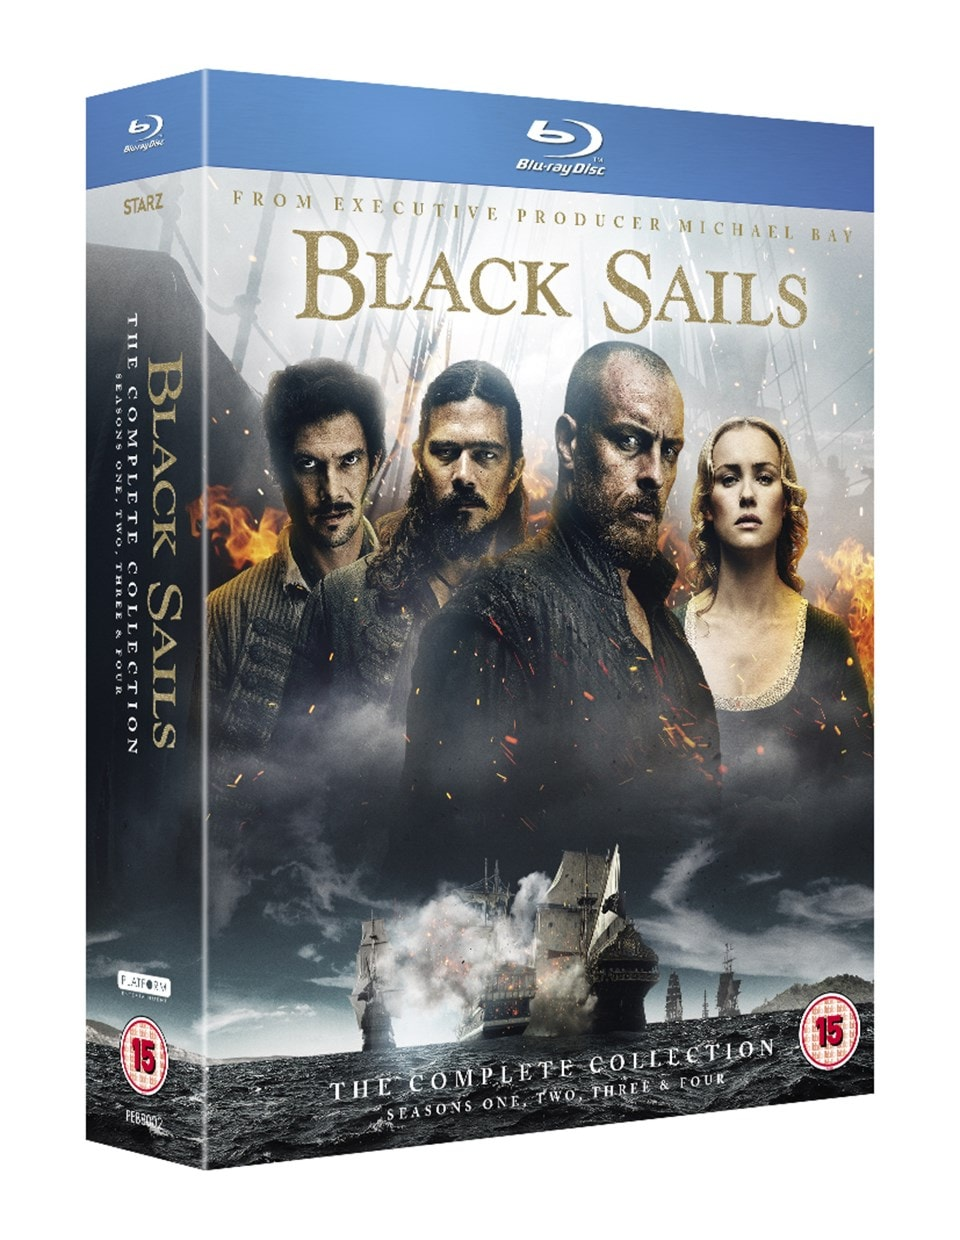 Black Sails: The Complete Collection - 2